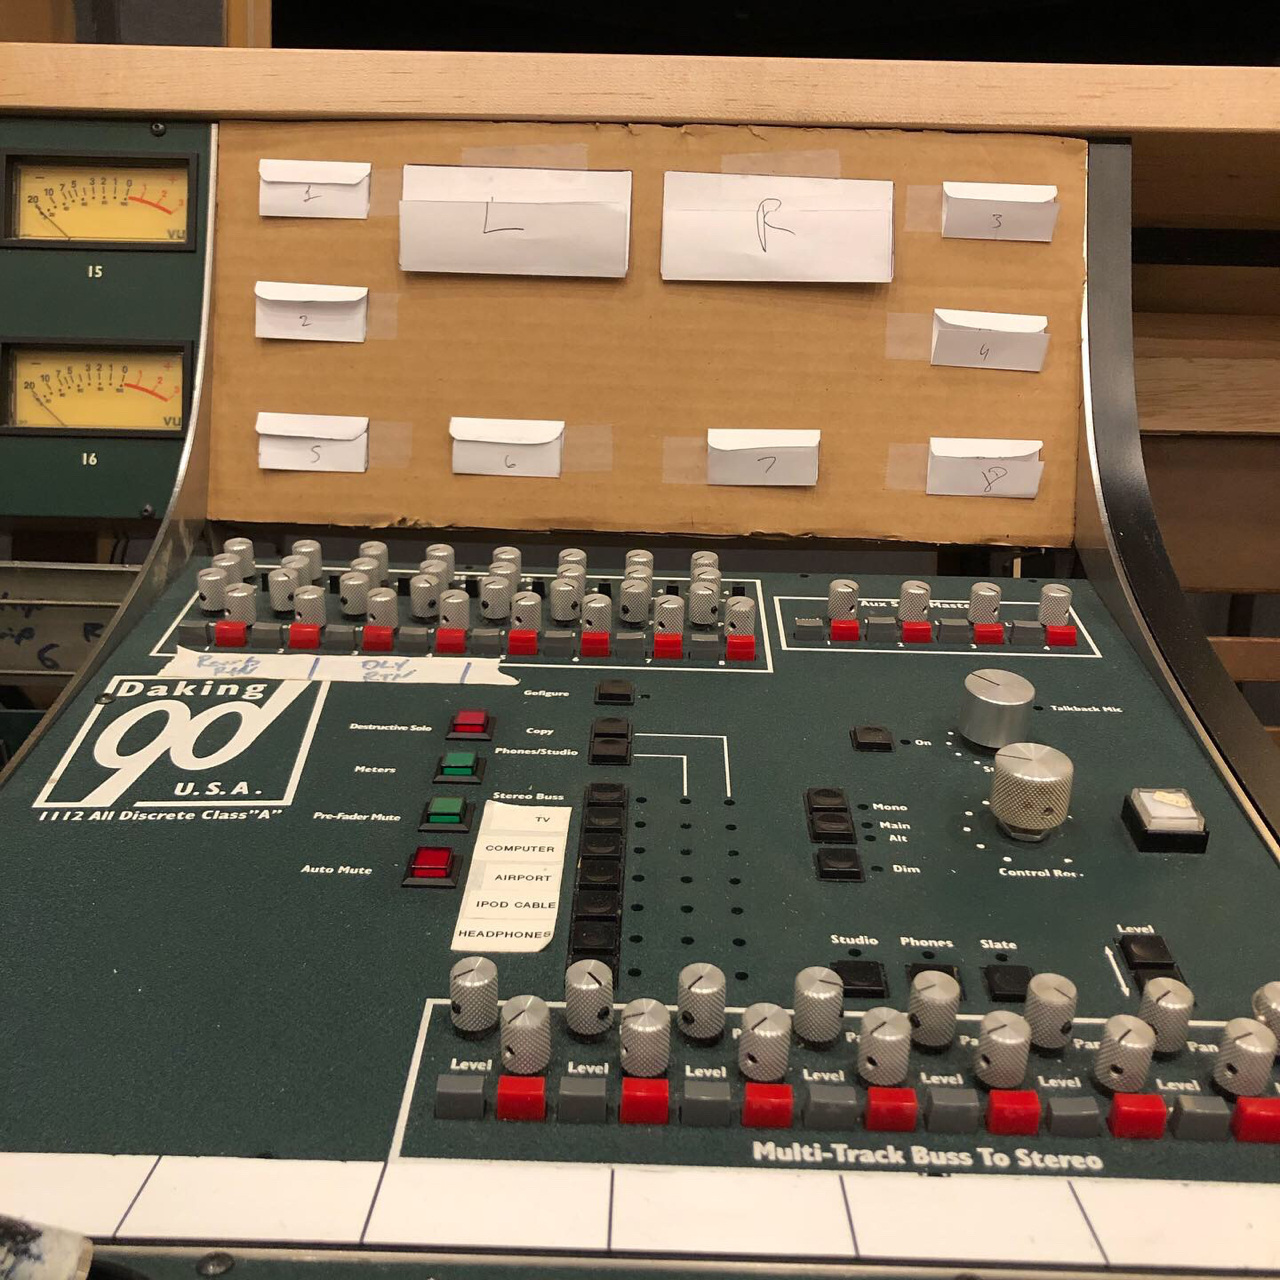 We added a center producers desk to the console, but we had to lose one of the buckets that used to house 8 compressors in order for the console to still fit in the room. This means we have to consolidate the master meters to one panel instead of 2, hence the cardboard mockup.